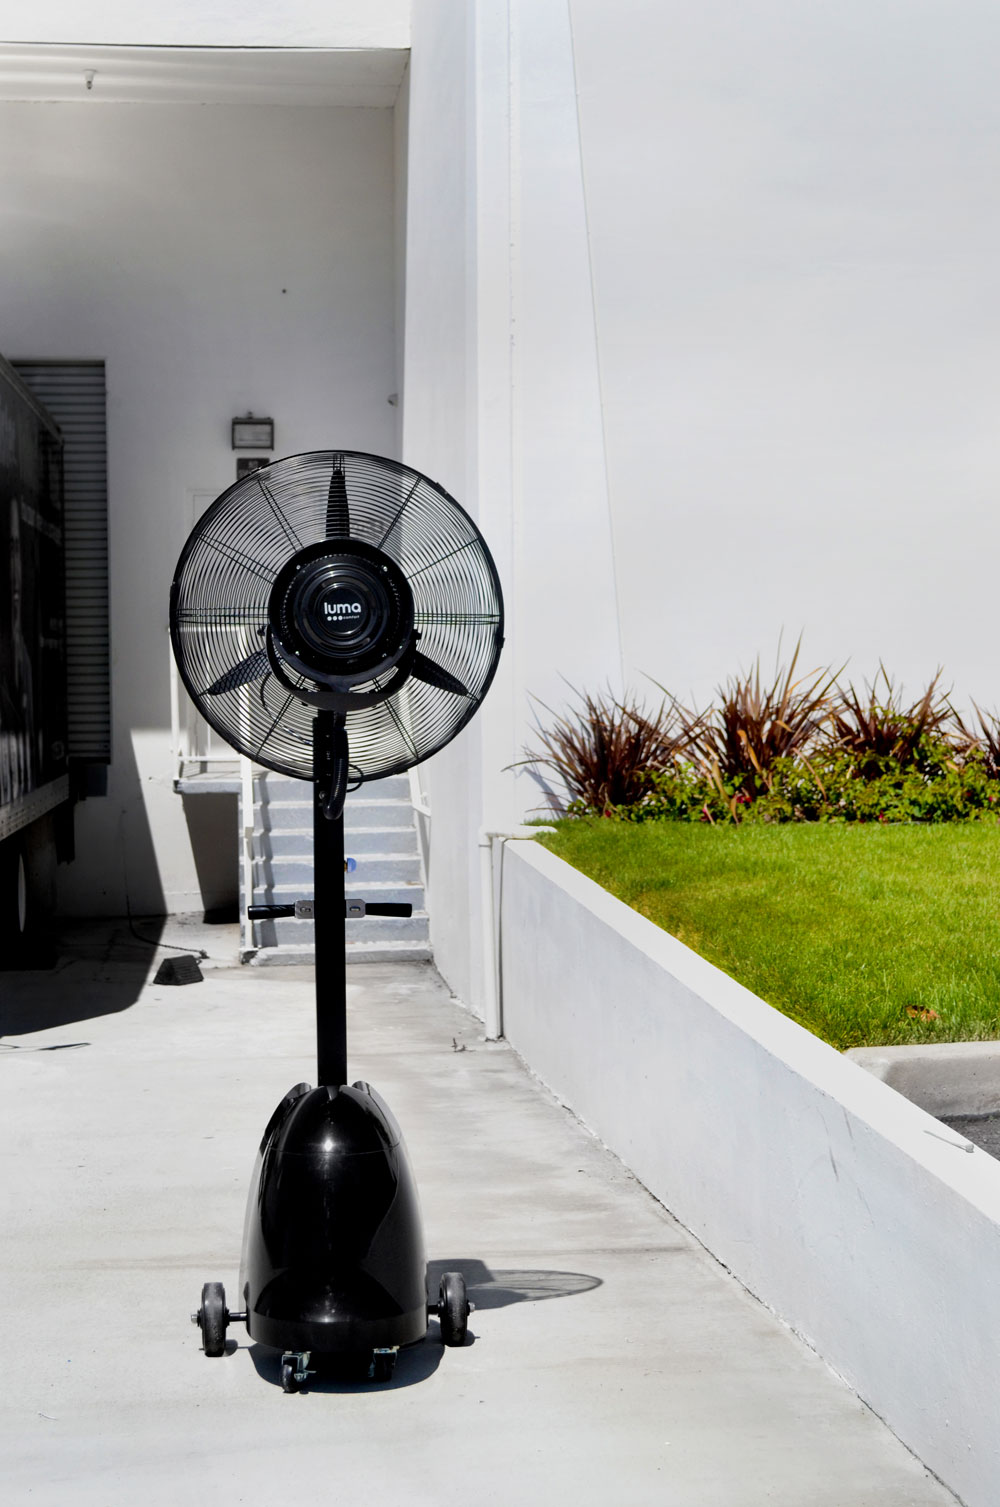 Buy Portable Outdoor Misting Fans At Patio Comforts